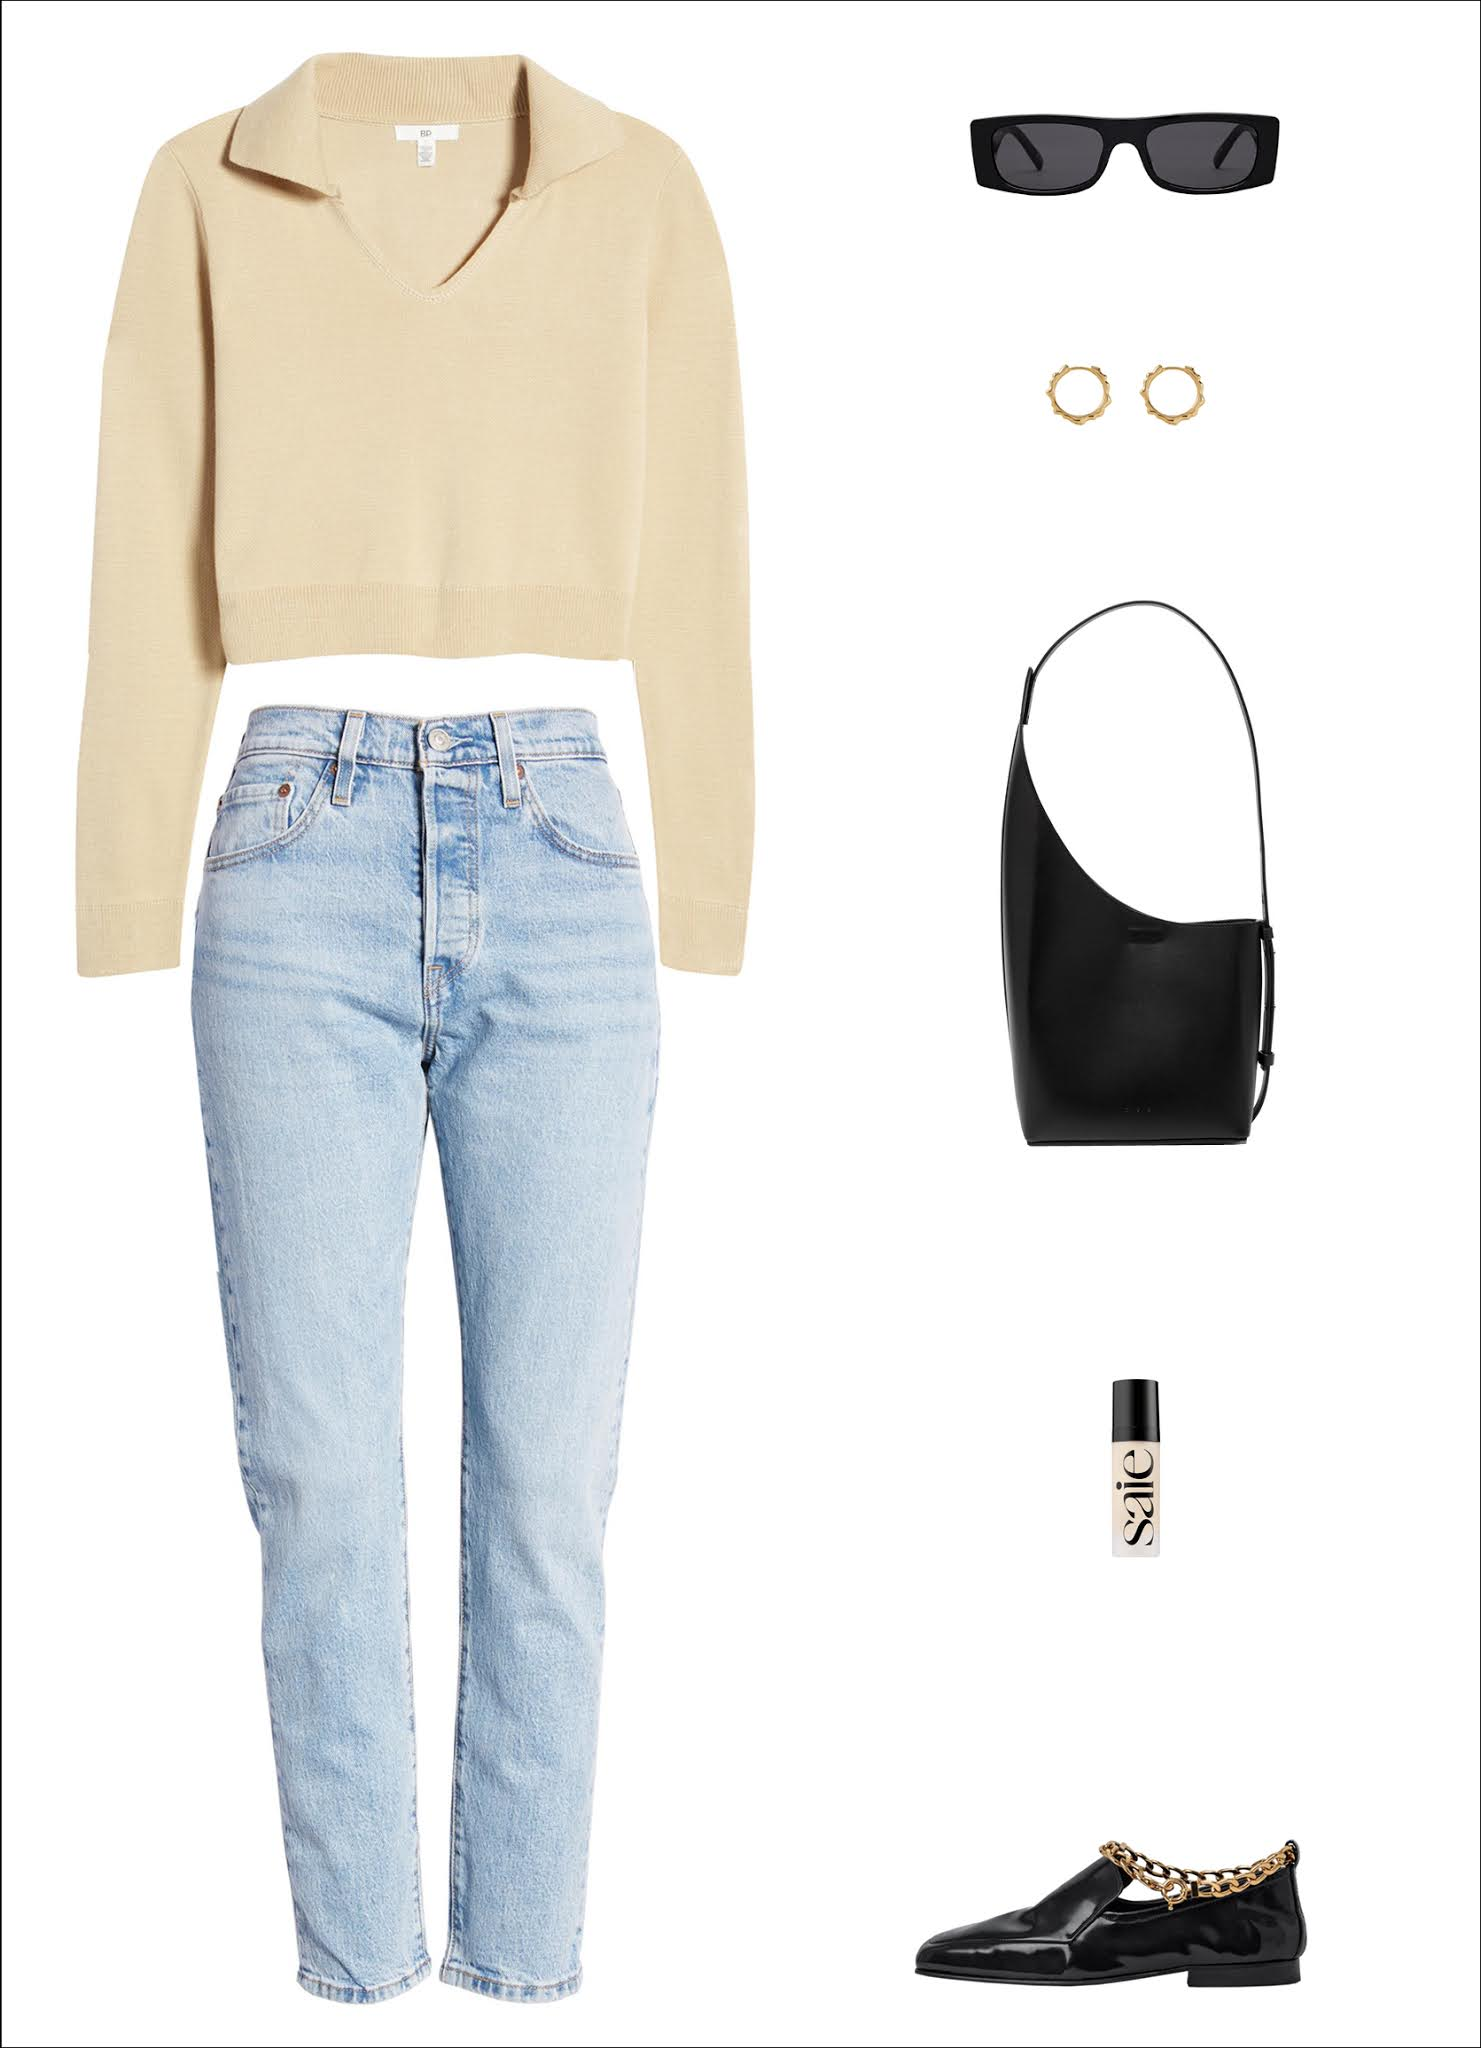 Stylish Transitional Spring Outfit Idea — Neutral Polo Sweater, Sunglasses, Hoop Earrings, Minimalist Black Tote Bag, Levi's 501 Jeans, Chain Anklet Loafers